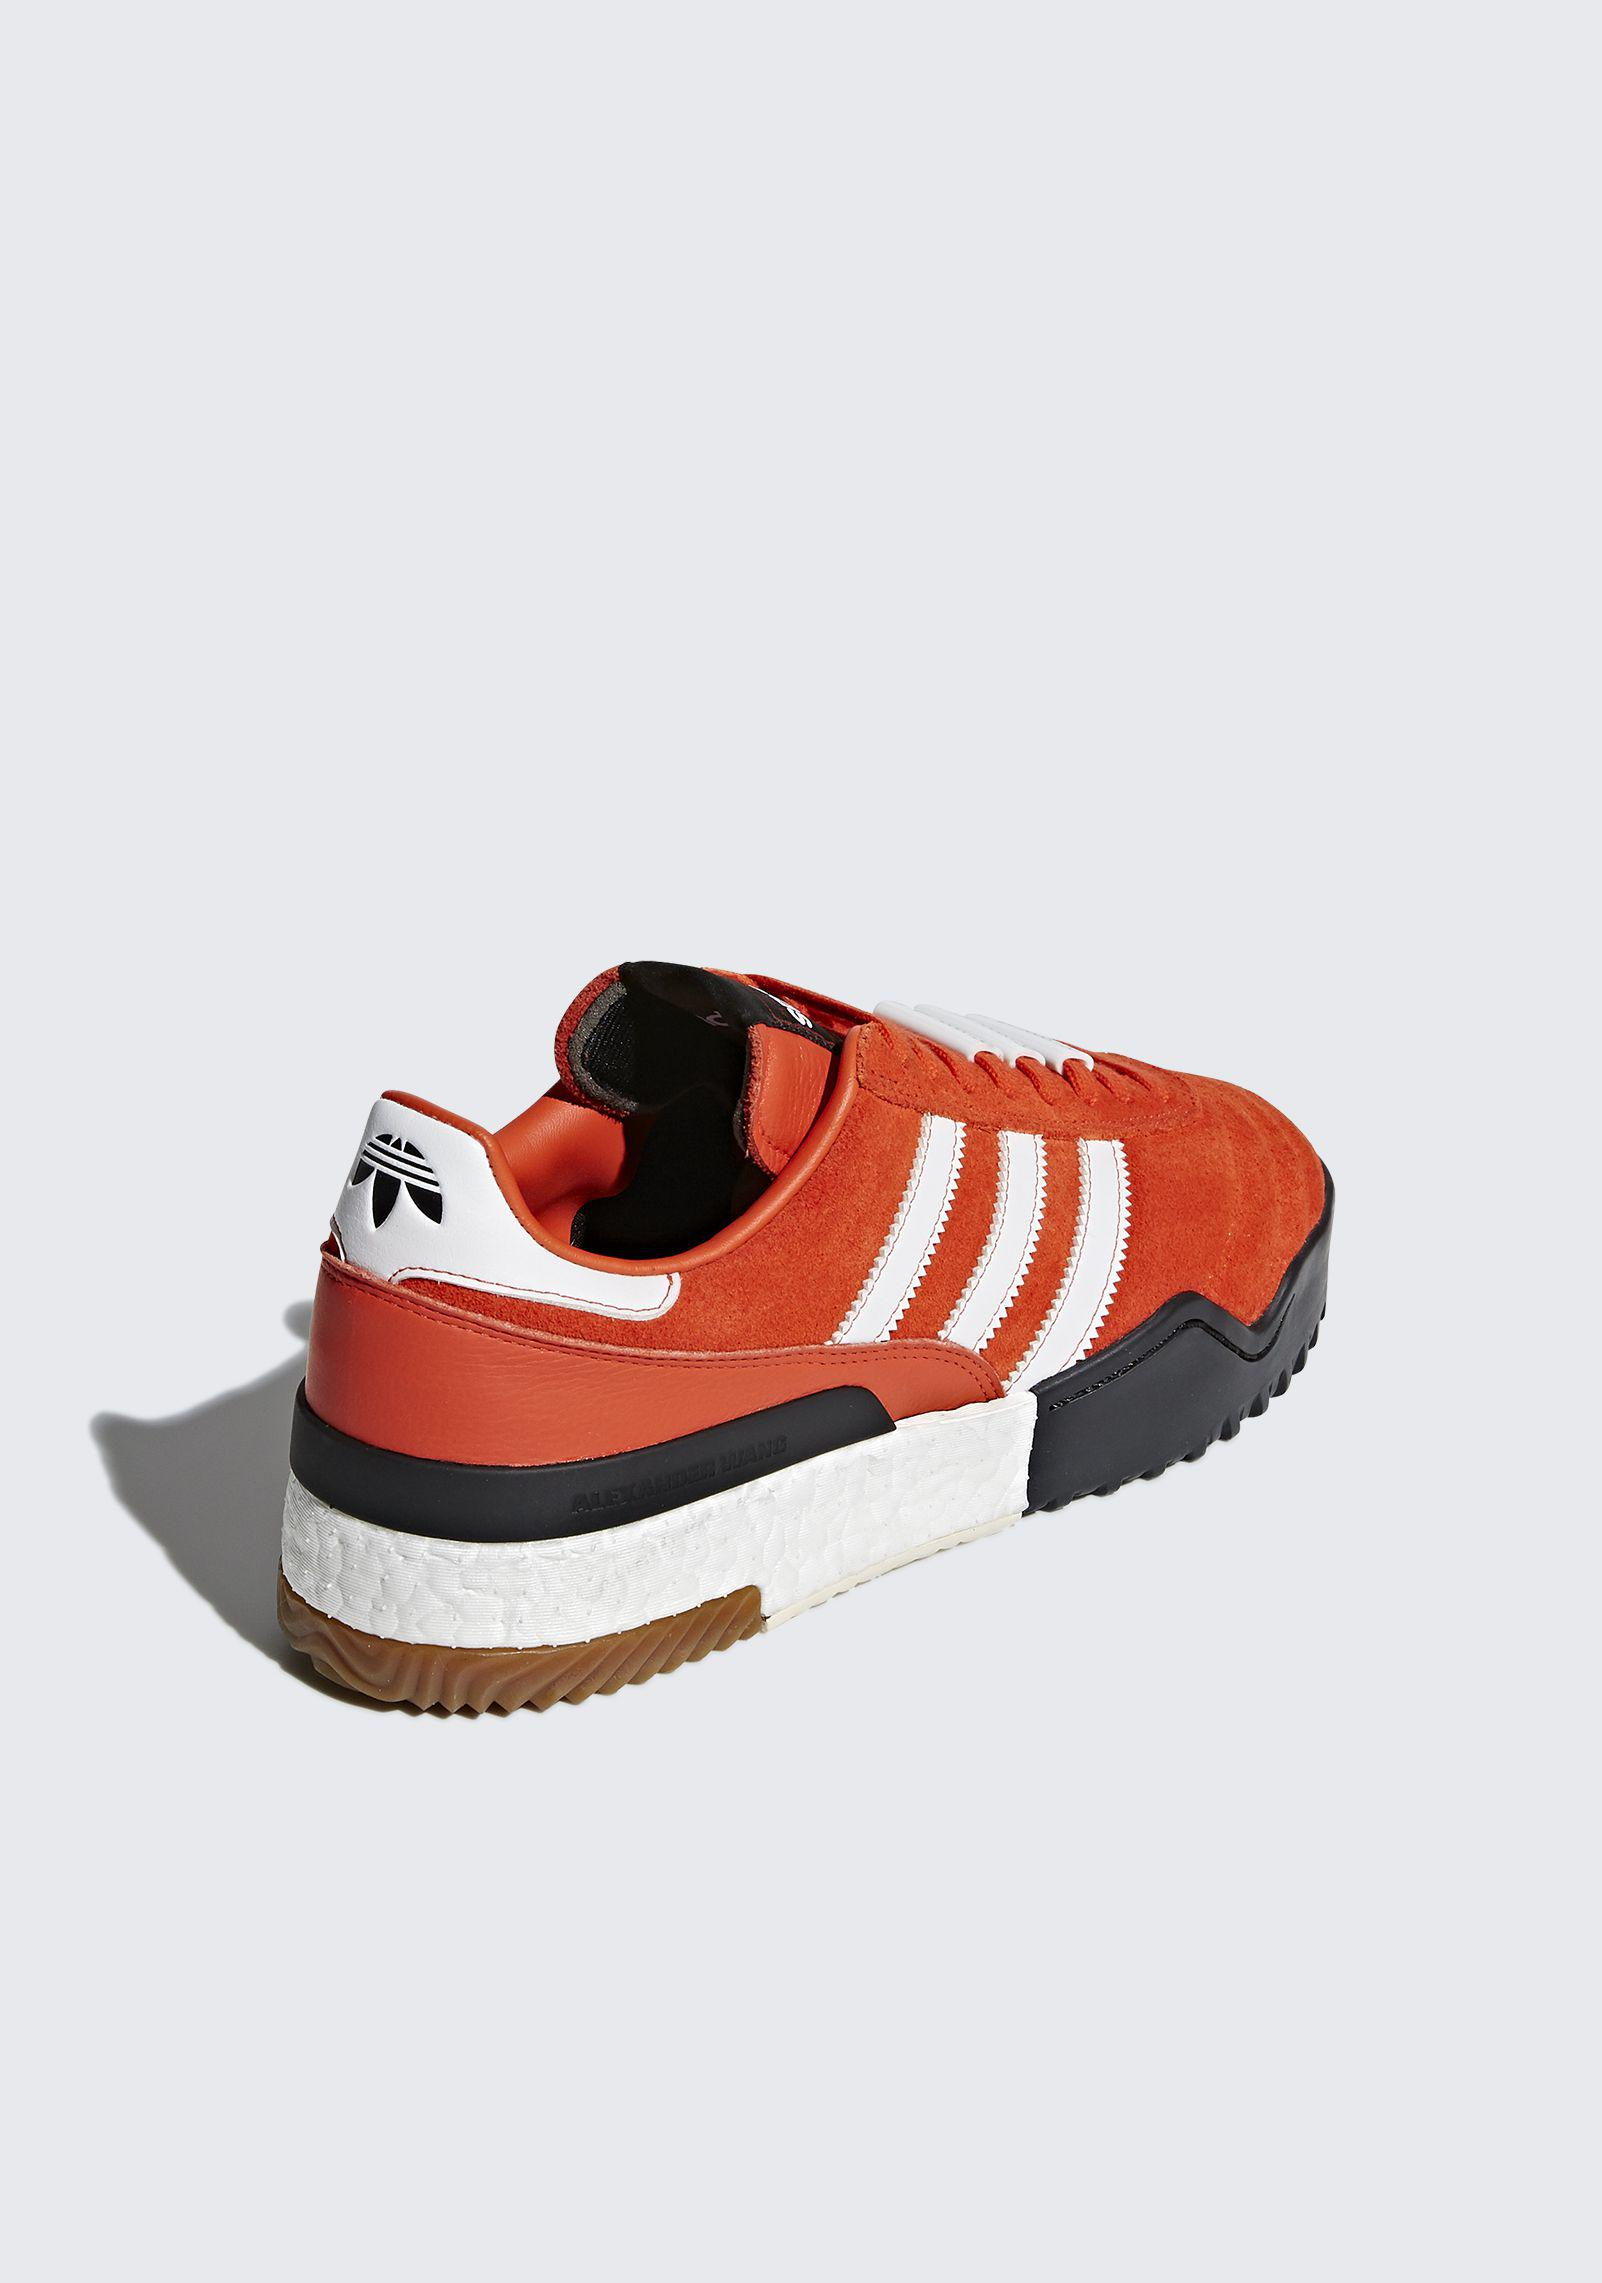 7c7f5b2cfe68 Alexander Wang Adidas Originals By Aw Bball Soccer Shoes in Red - Lyst